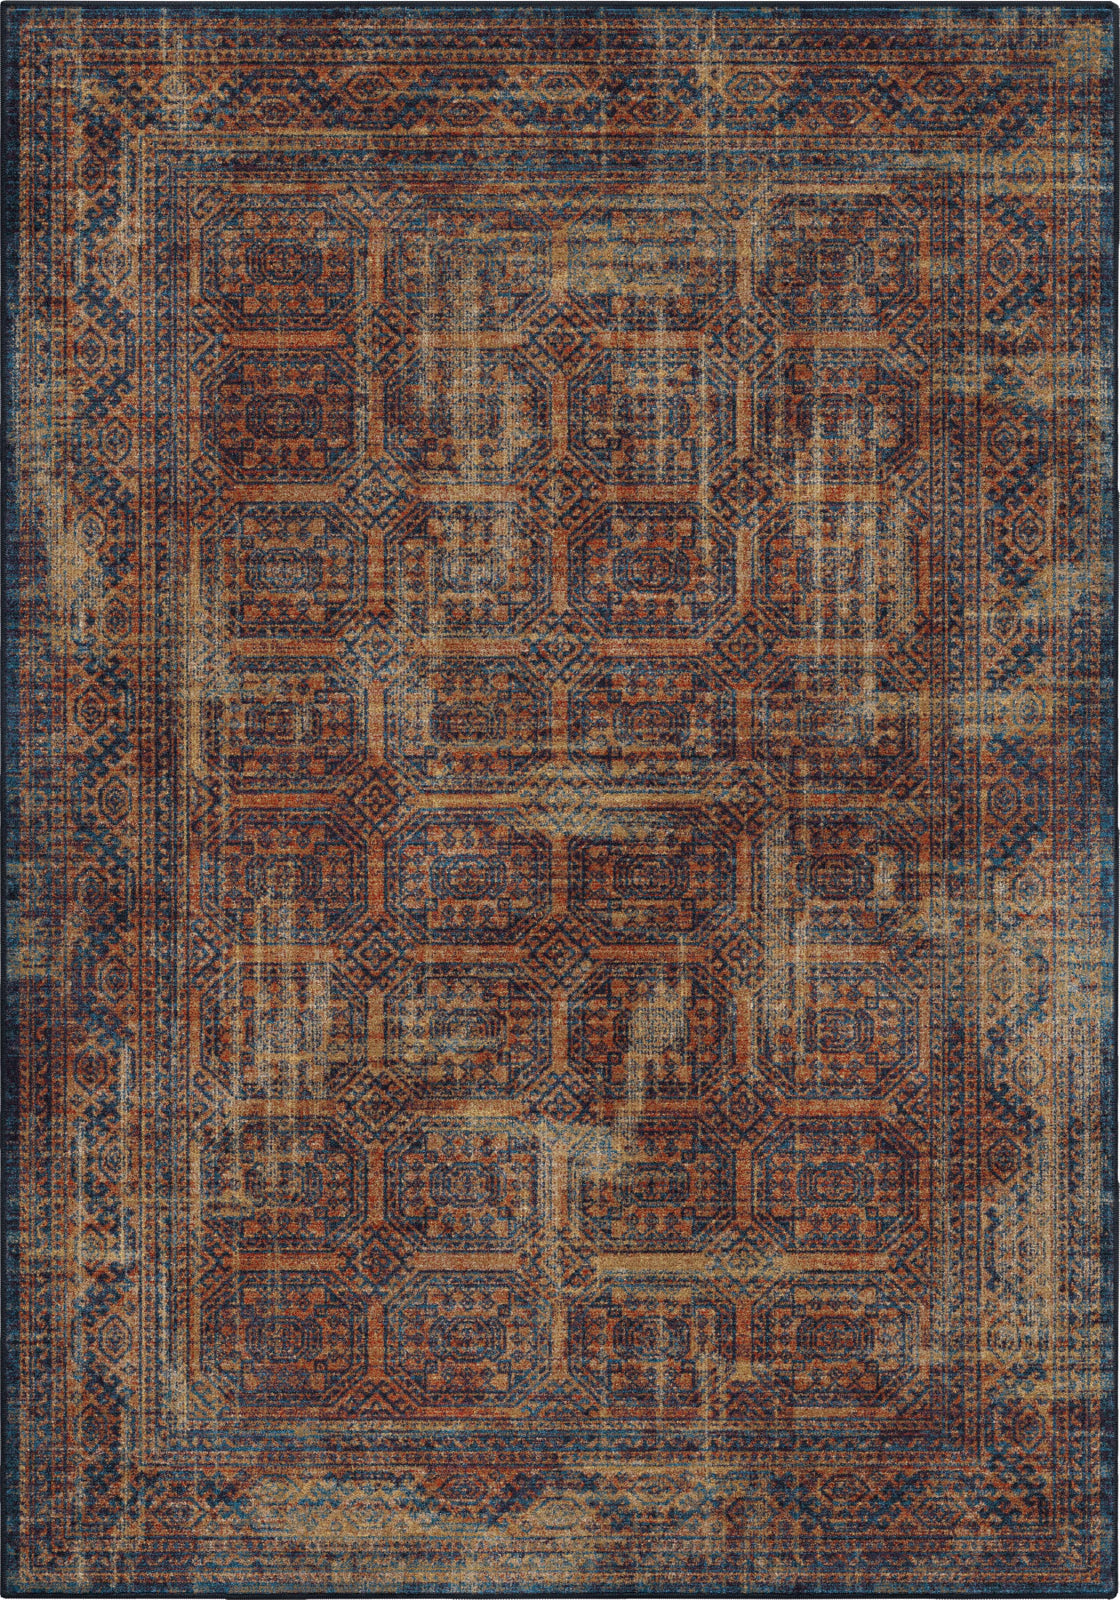 Orian Rugs Alexandria Northern Mashad Thatch Red Area Rug by Palmetto Living main image